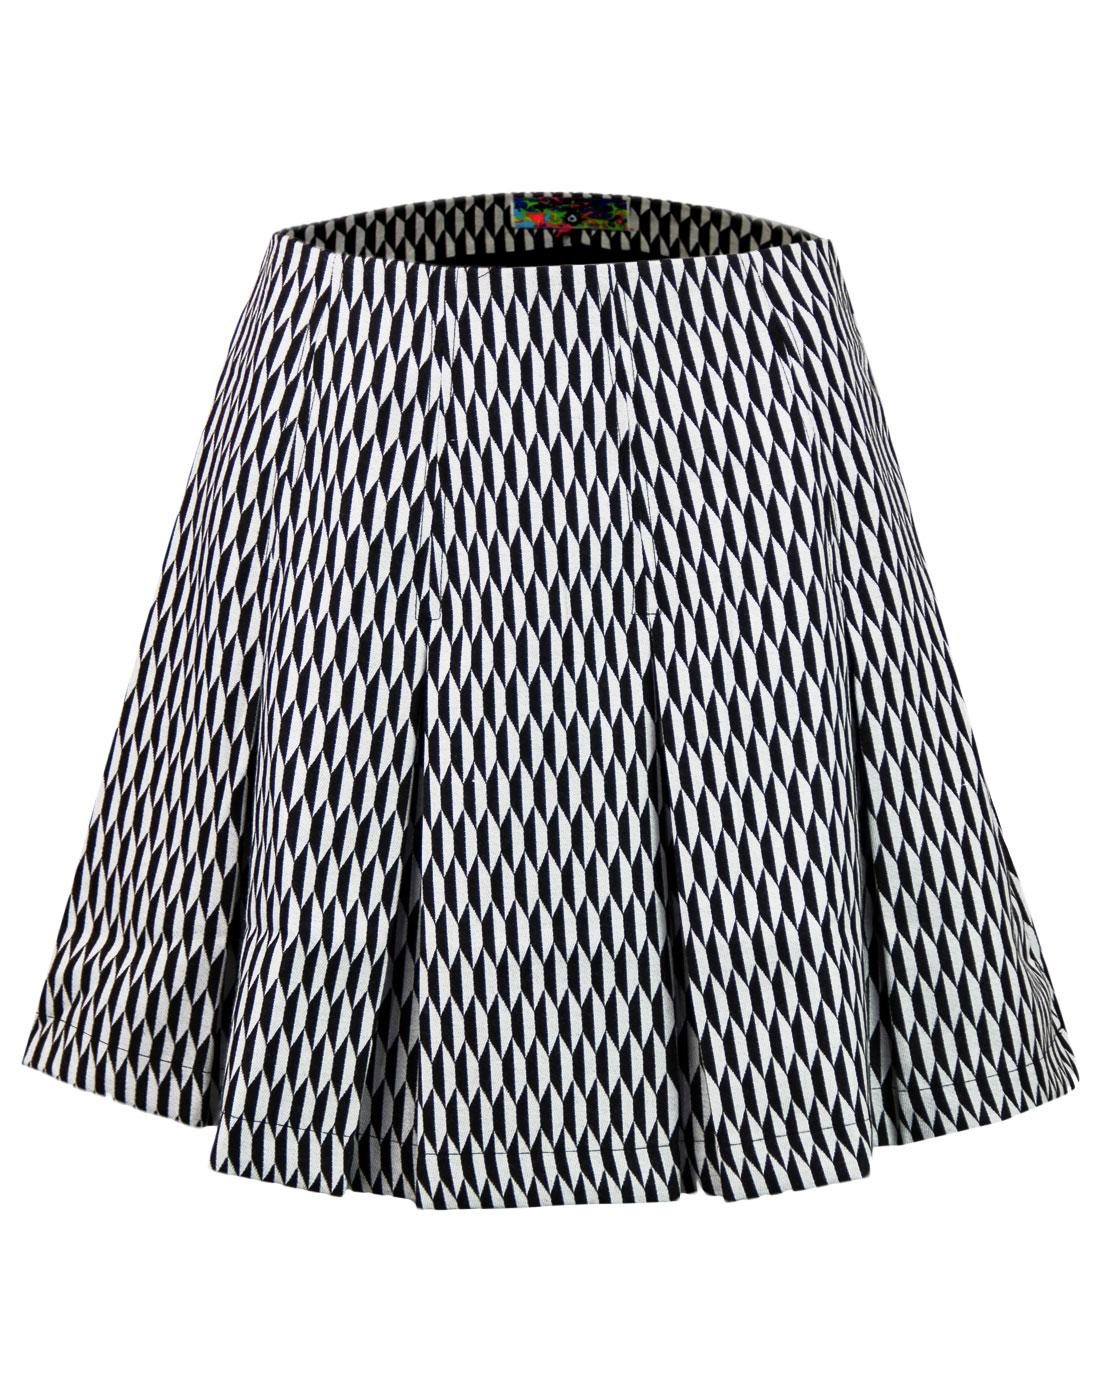 madcap england retro pleated diamond tennis skirt